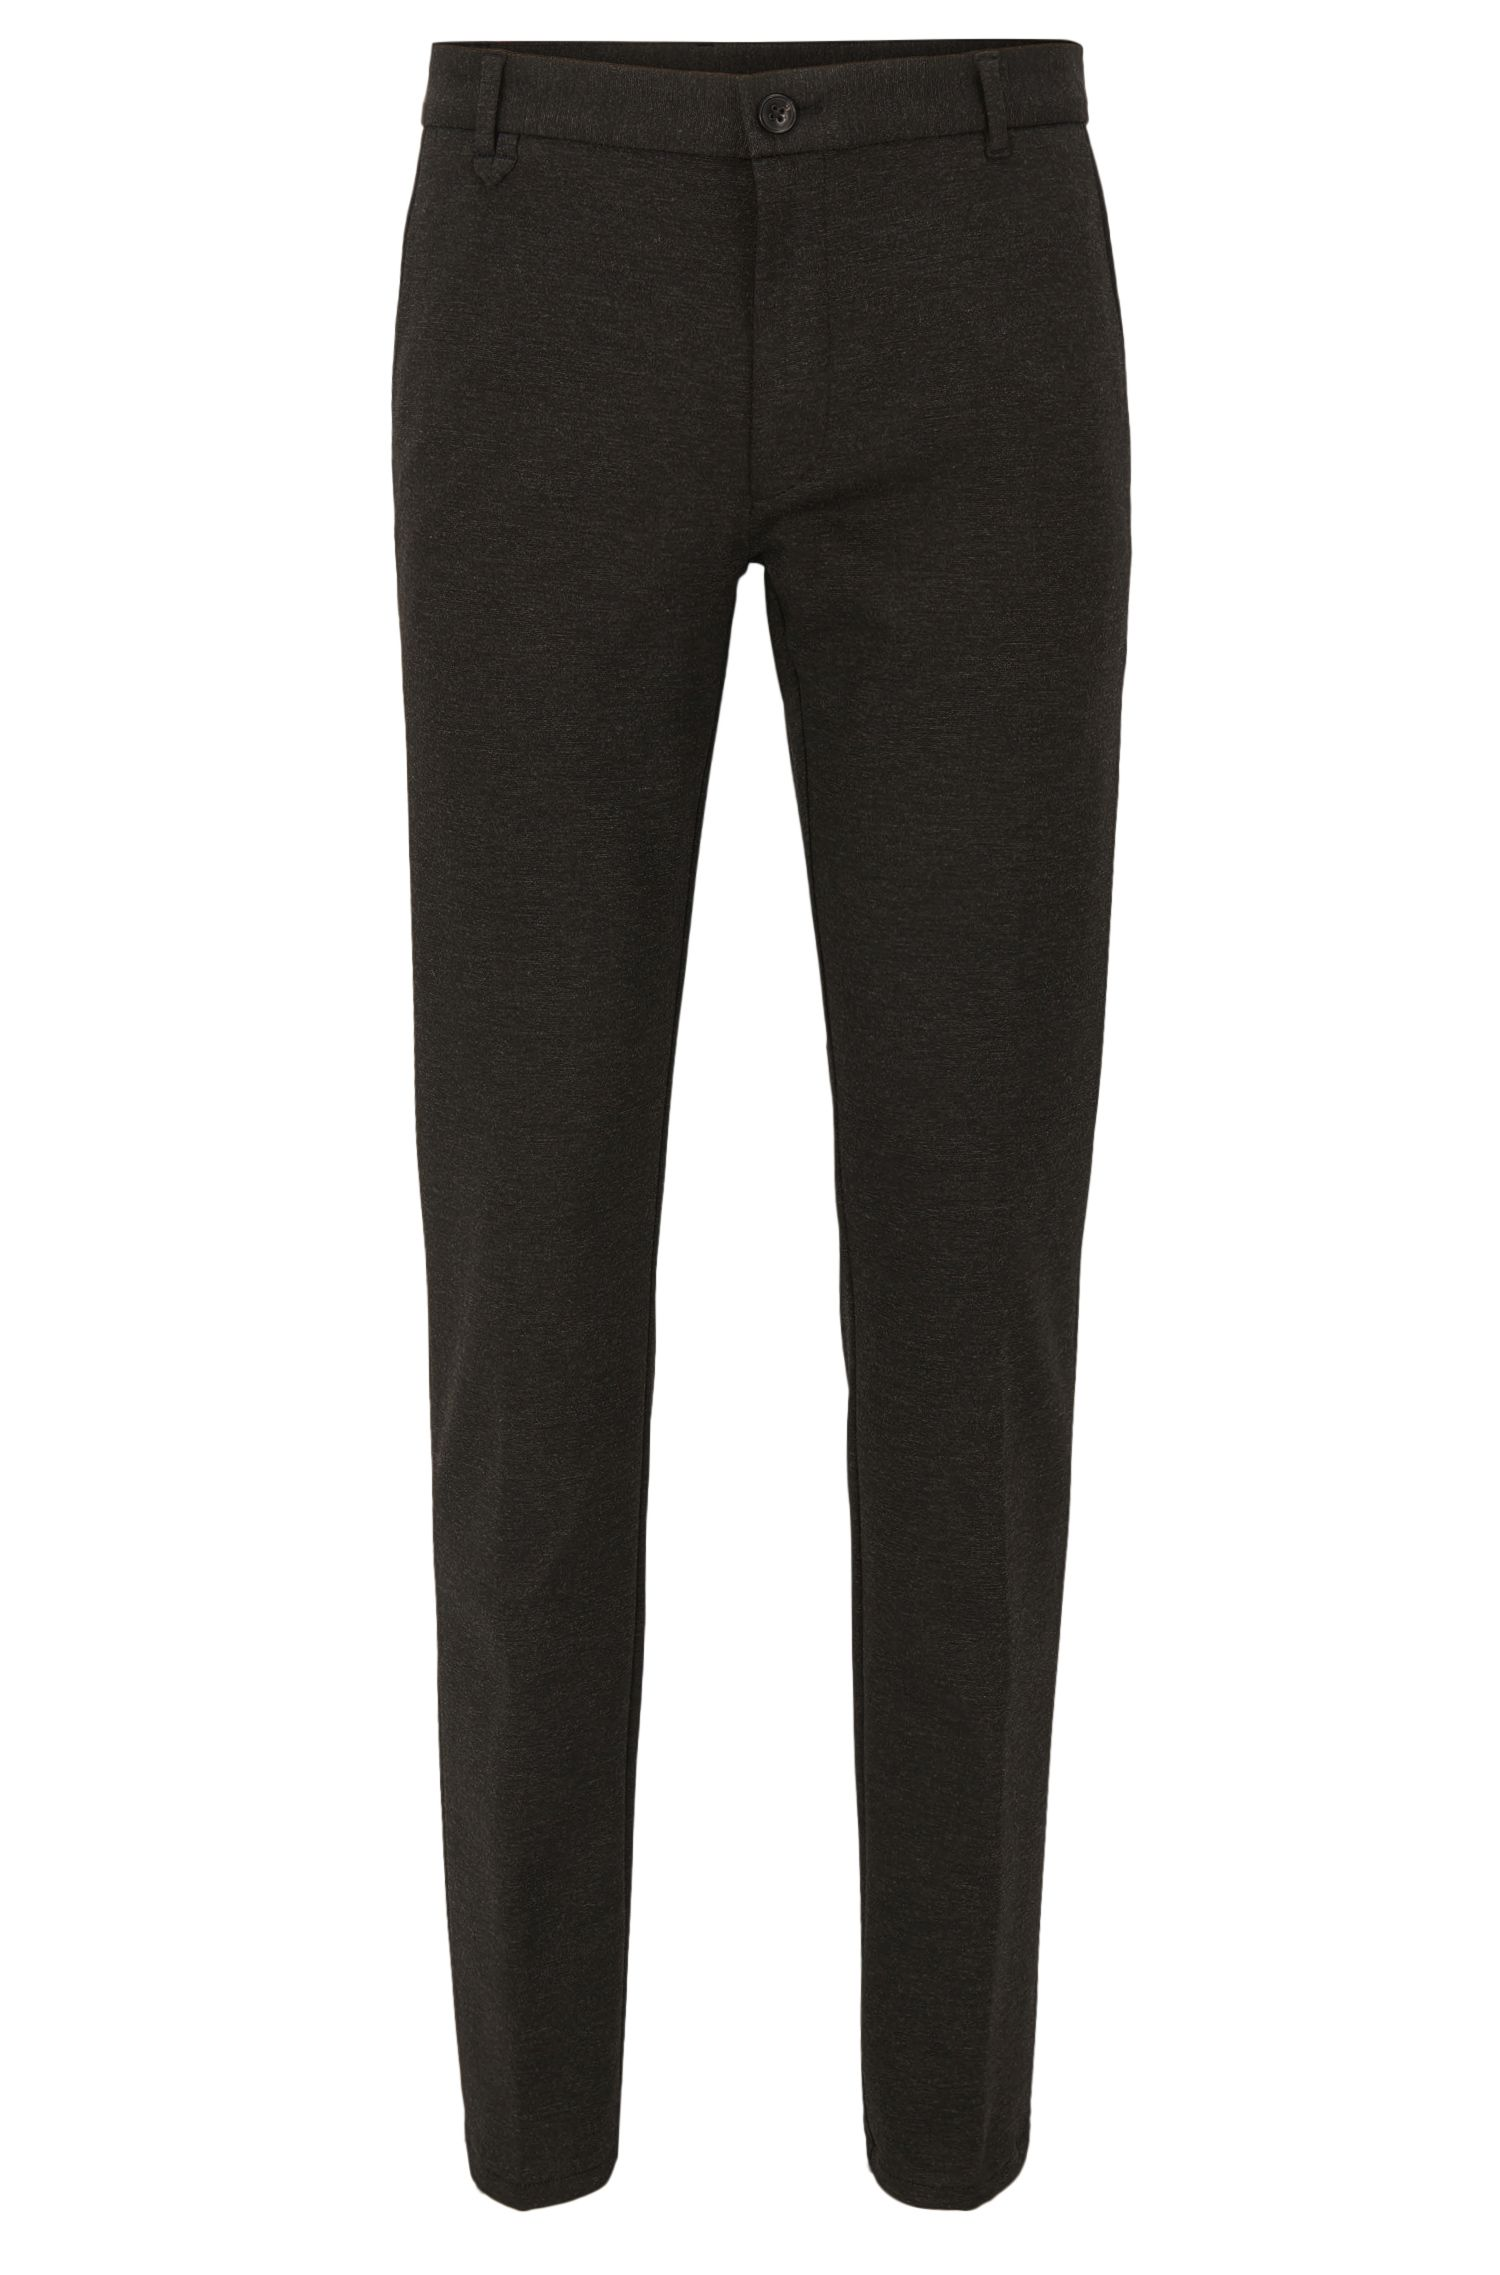 Stretch Viscose Pants, Extra Slim Fit | Heldor, Charcoal